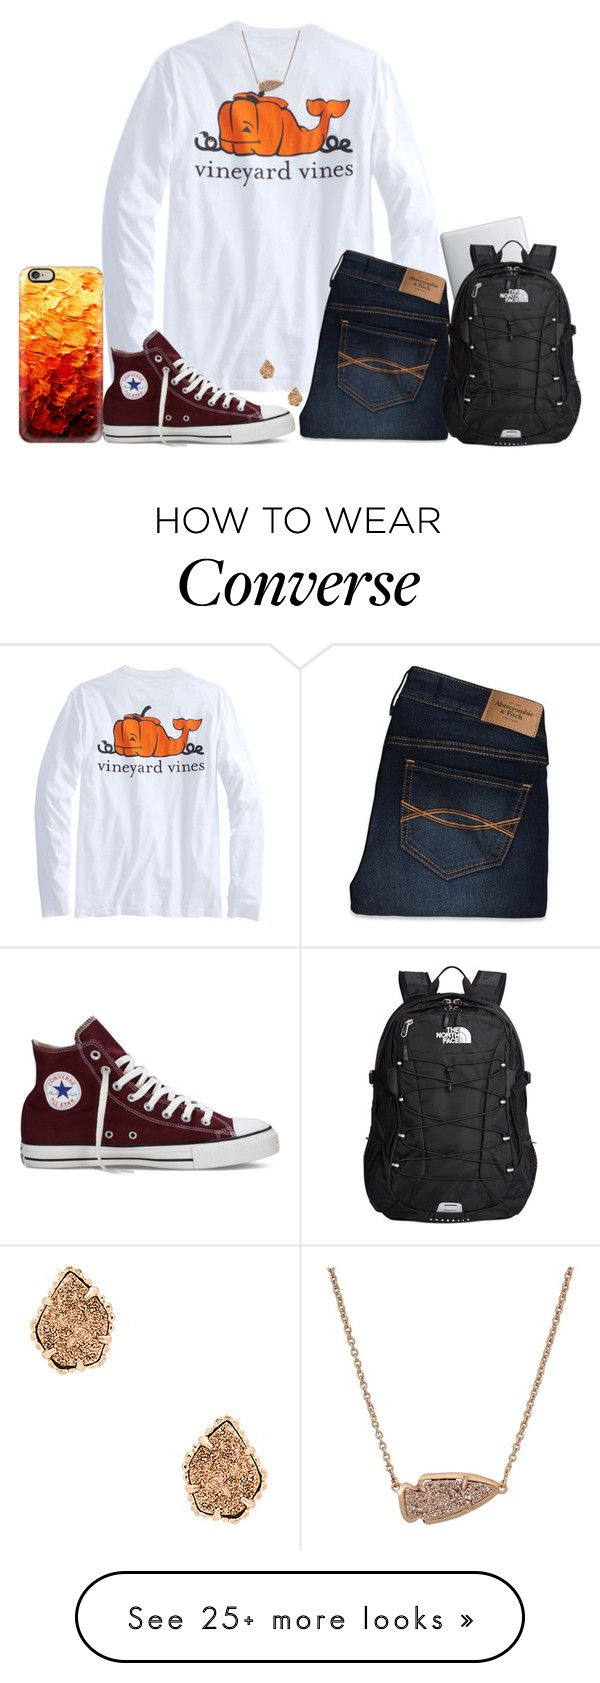 """""""{Contest in D!!}"""" by ygkwhite on Polyvore featuring Casetify, Converse, Abercrombie & Fitch, Kendra Scott, The North Face and ygkfallcontest"""